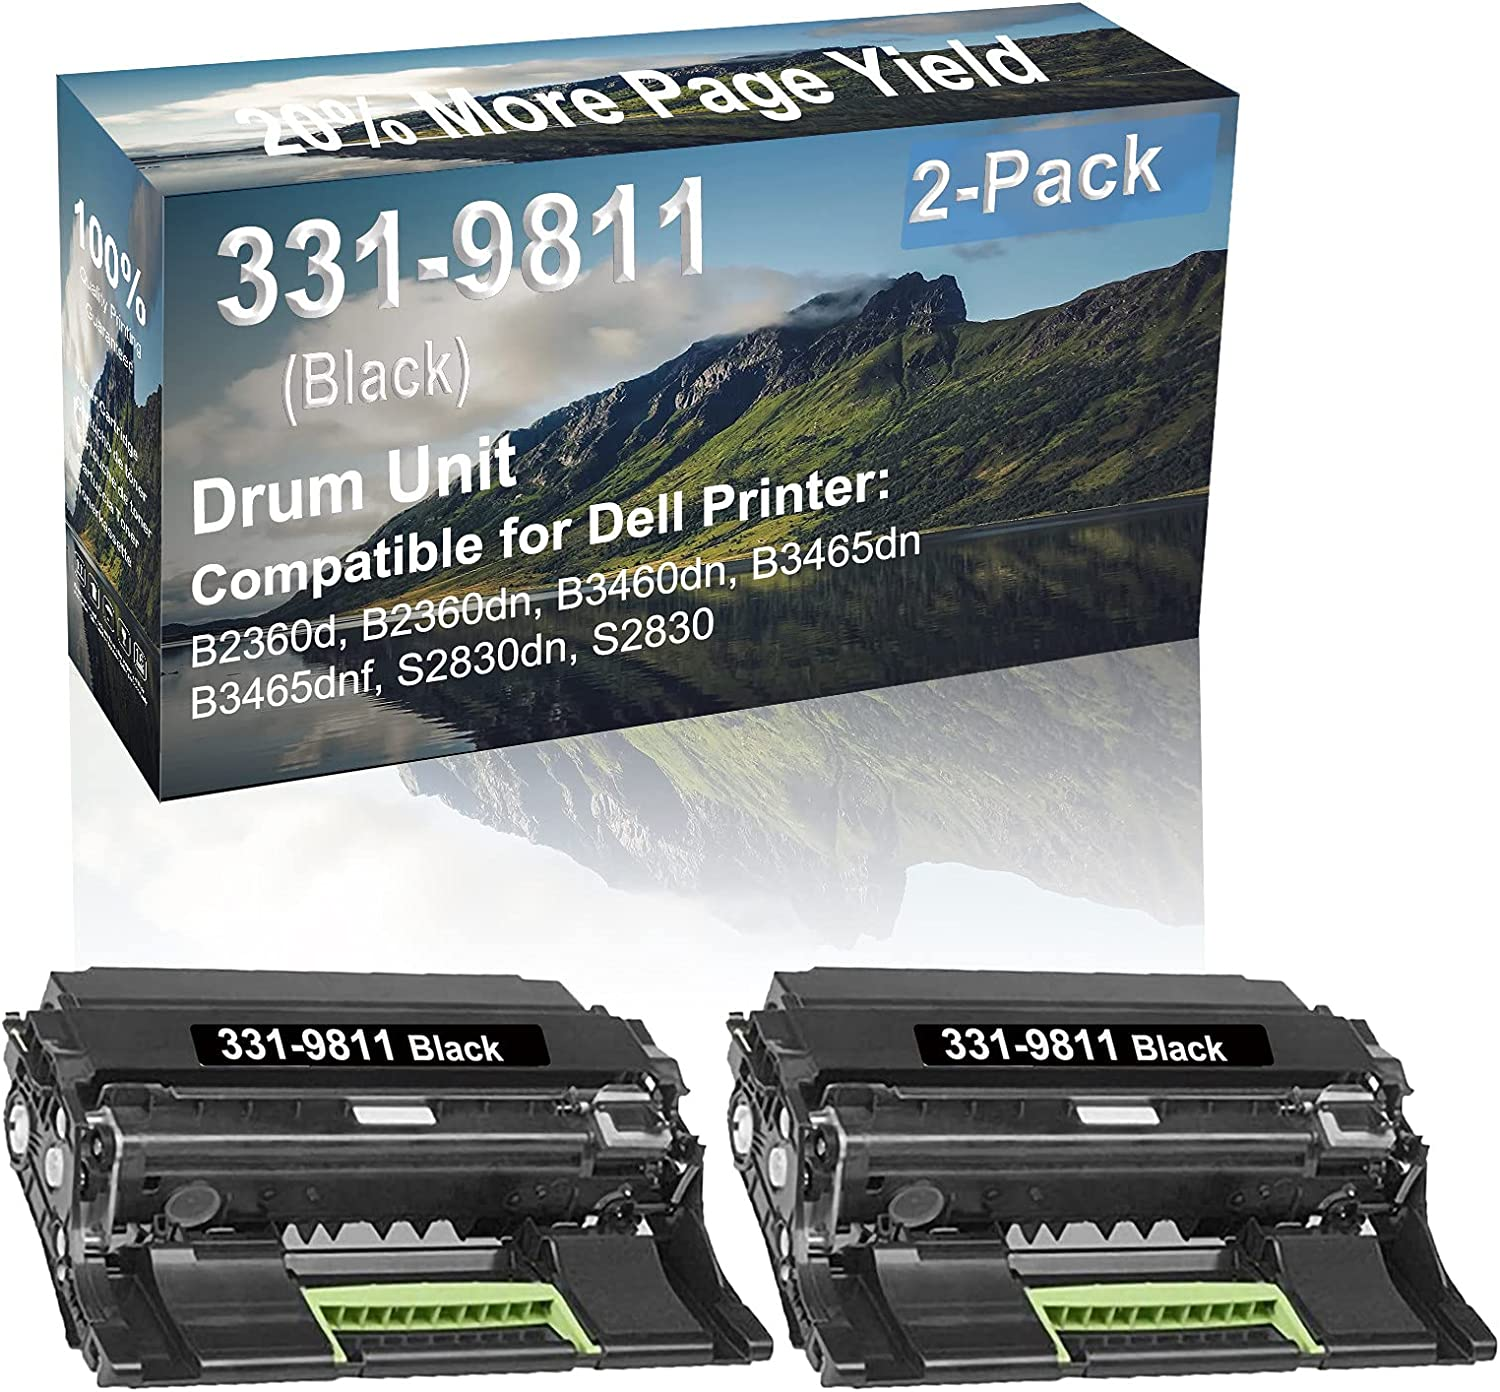 2-Pack (Black) Compatible B3460dn, B3465dn Printer Drum Unit Replacement for Dell 331-9811 Drum Kit